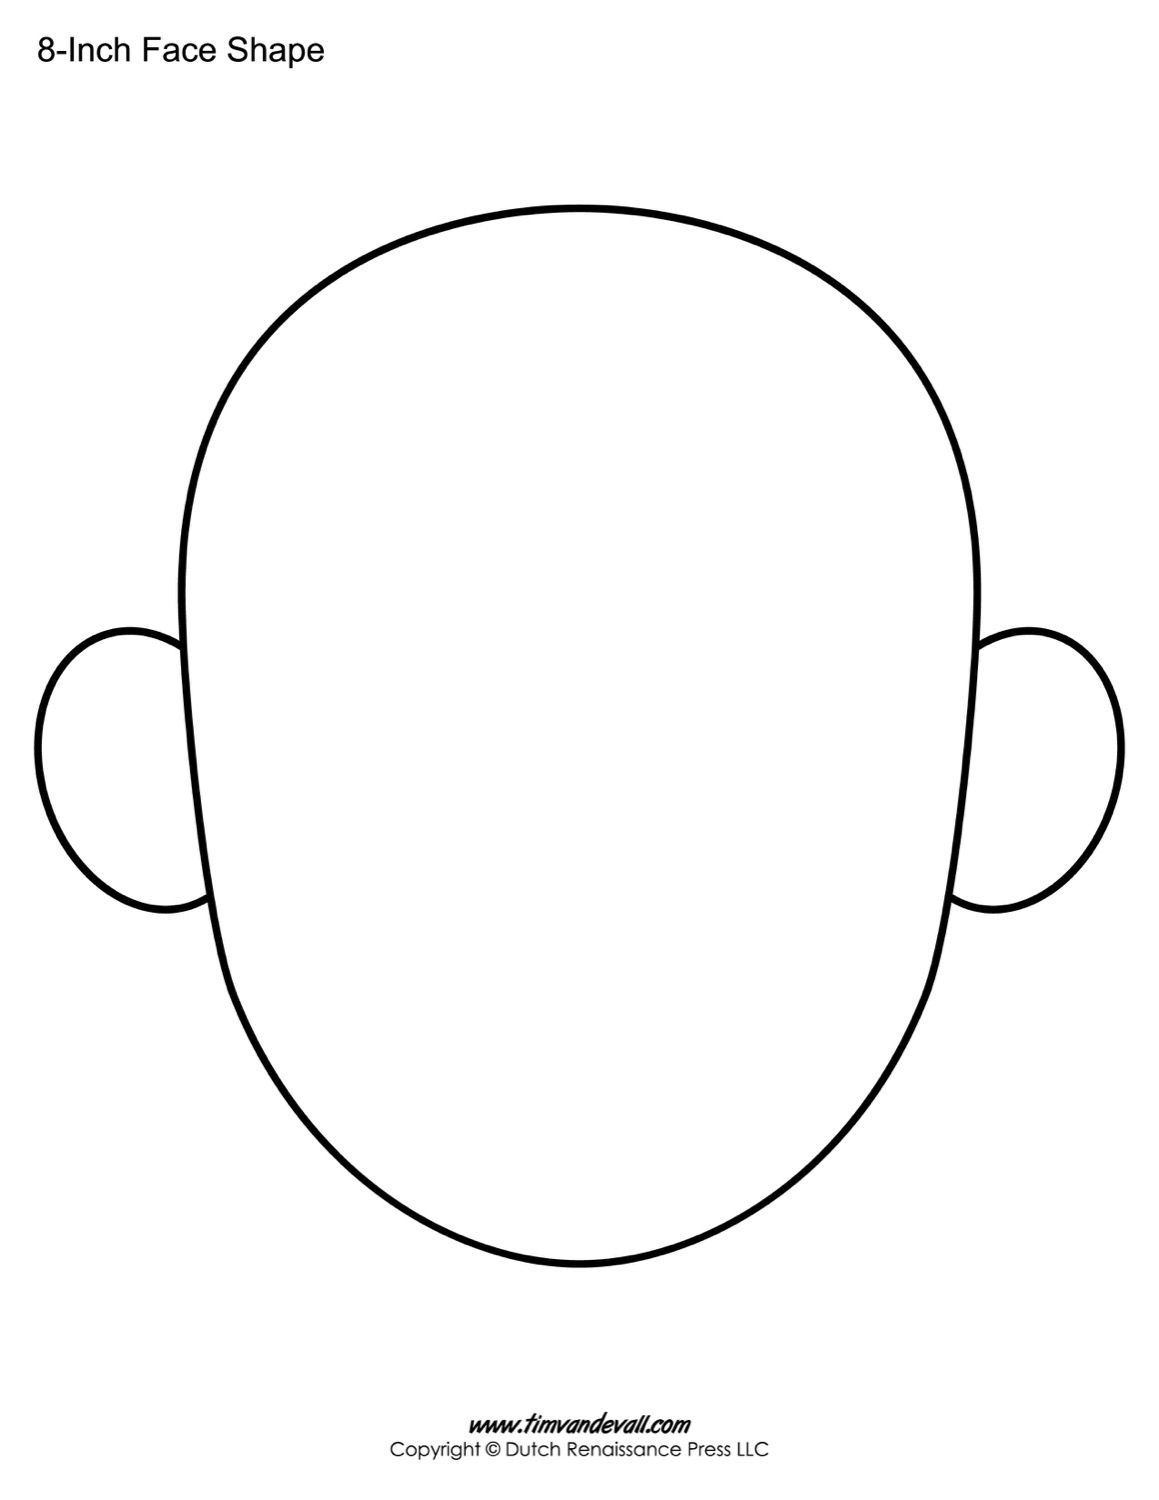 The Following Blank Face Templates Can Be Use For A Variety Of Back To School Activities And Ice